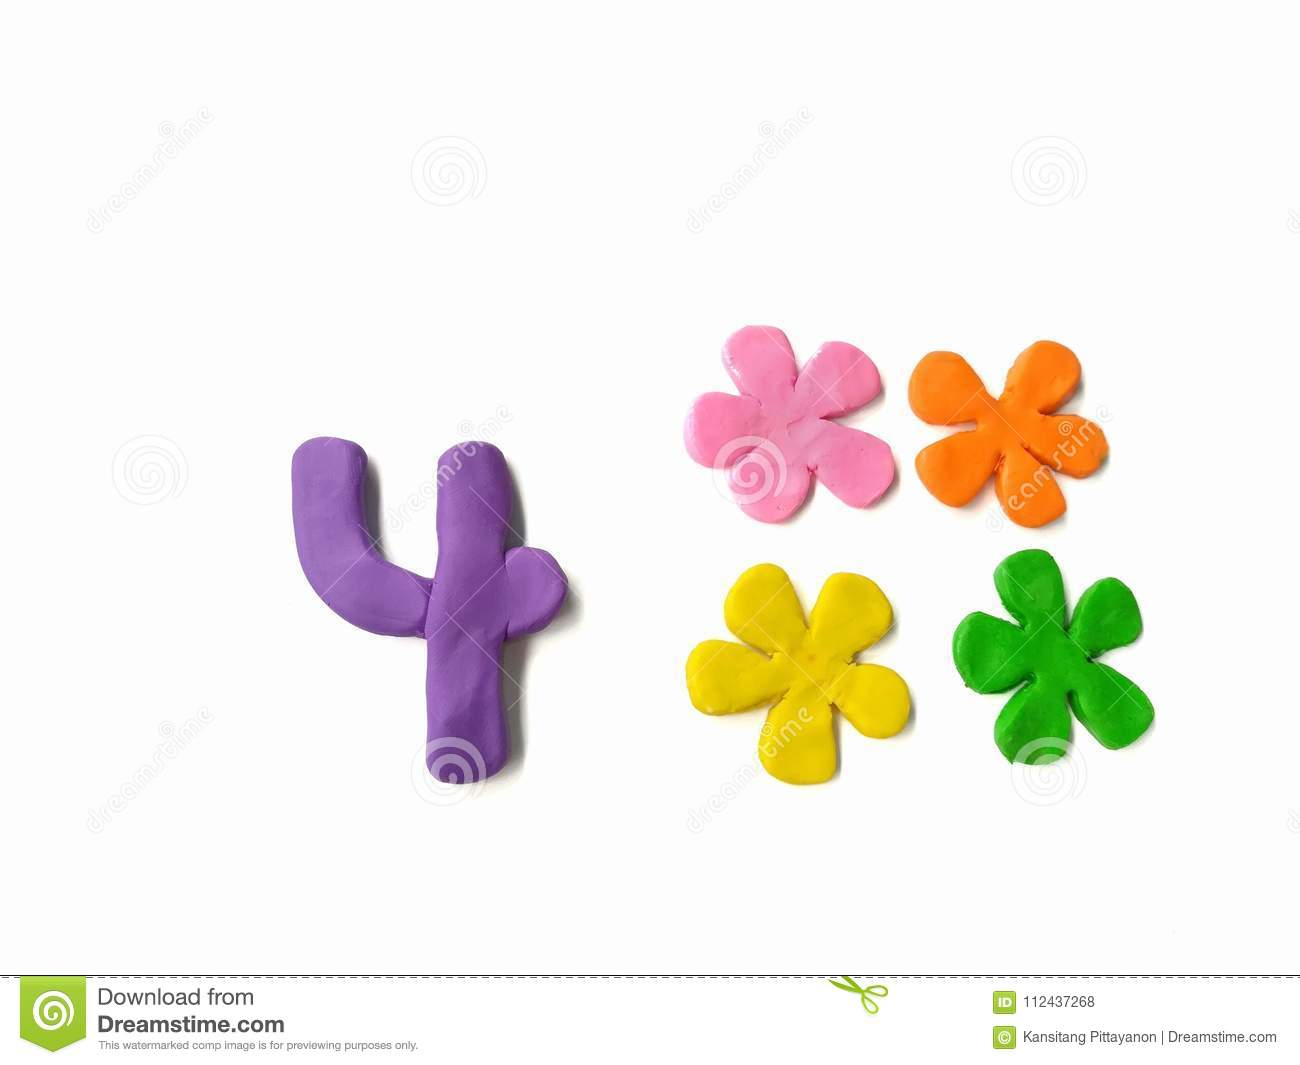 Number 4 plasticine clay, forur beautiful flowers, colorful floral, alphabet dough